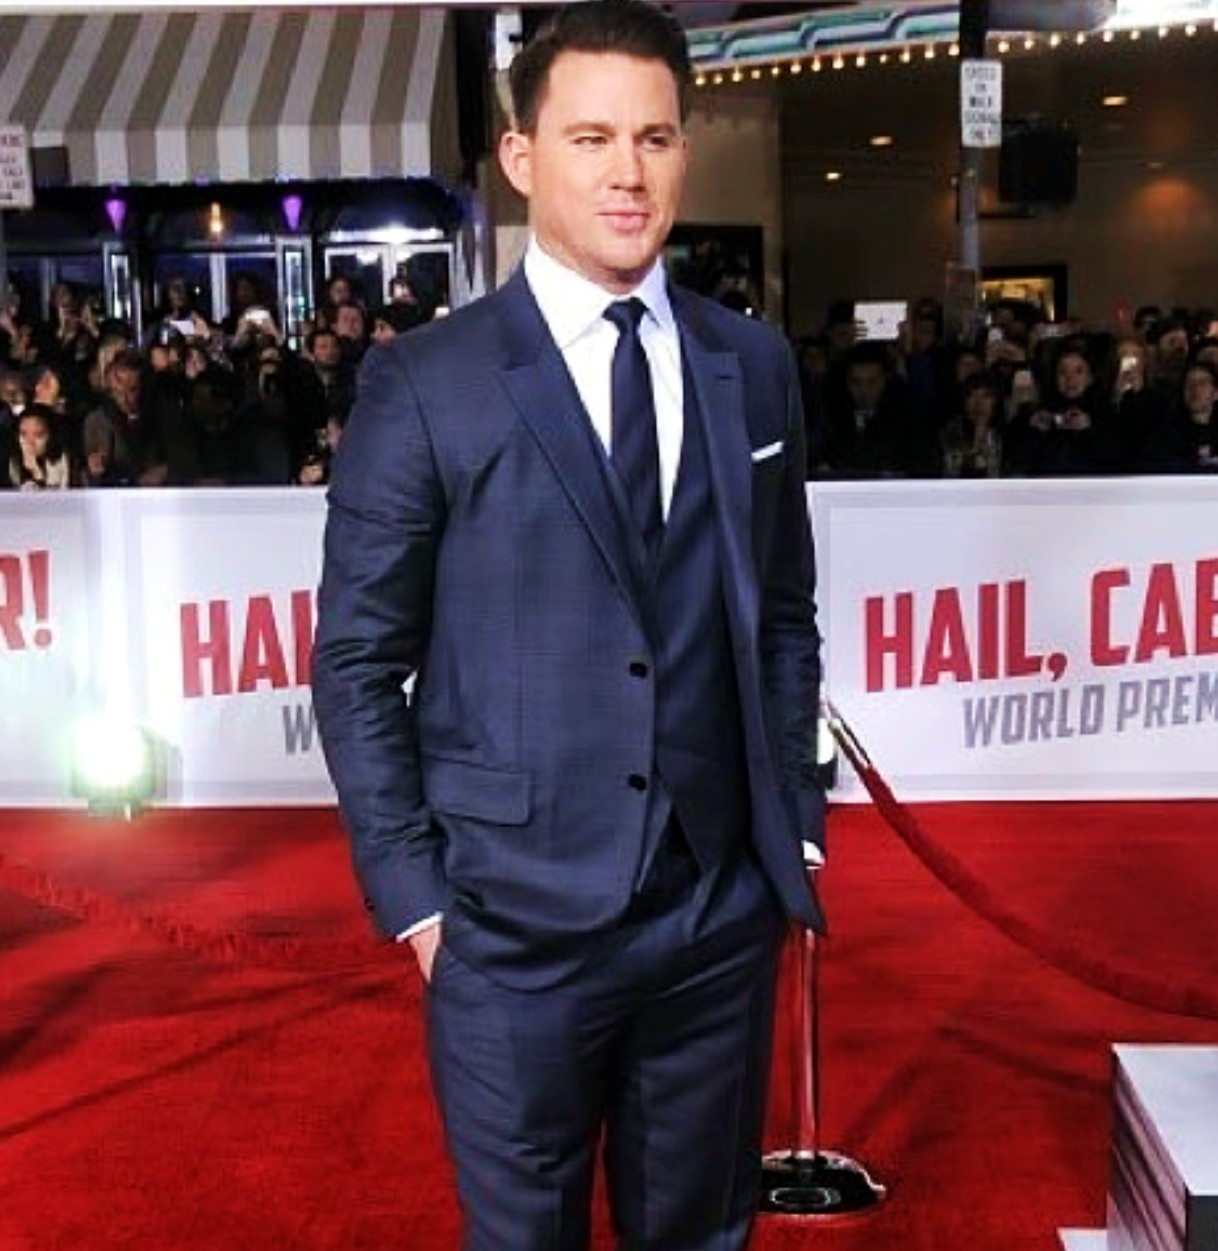 Hail Caesar, movie premiere, Channing Tatum